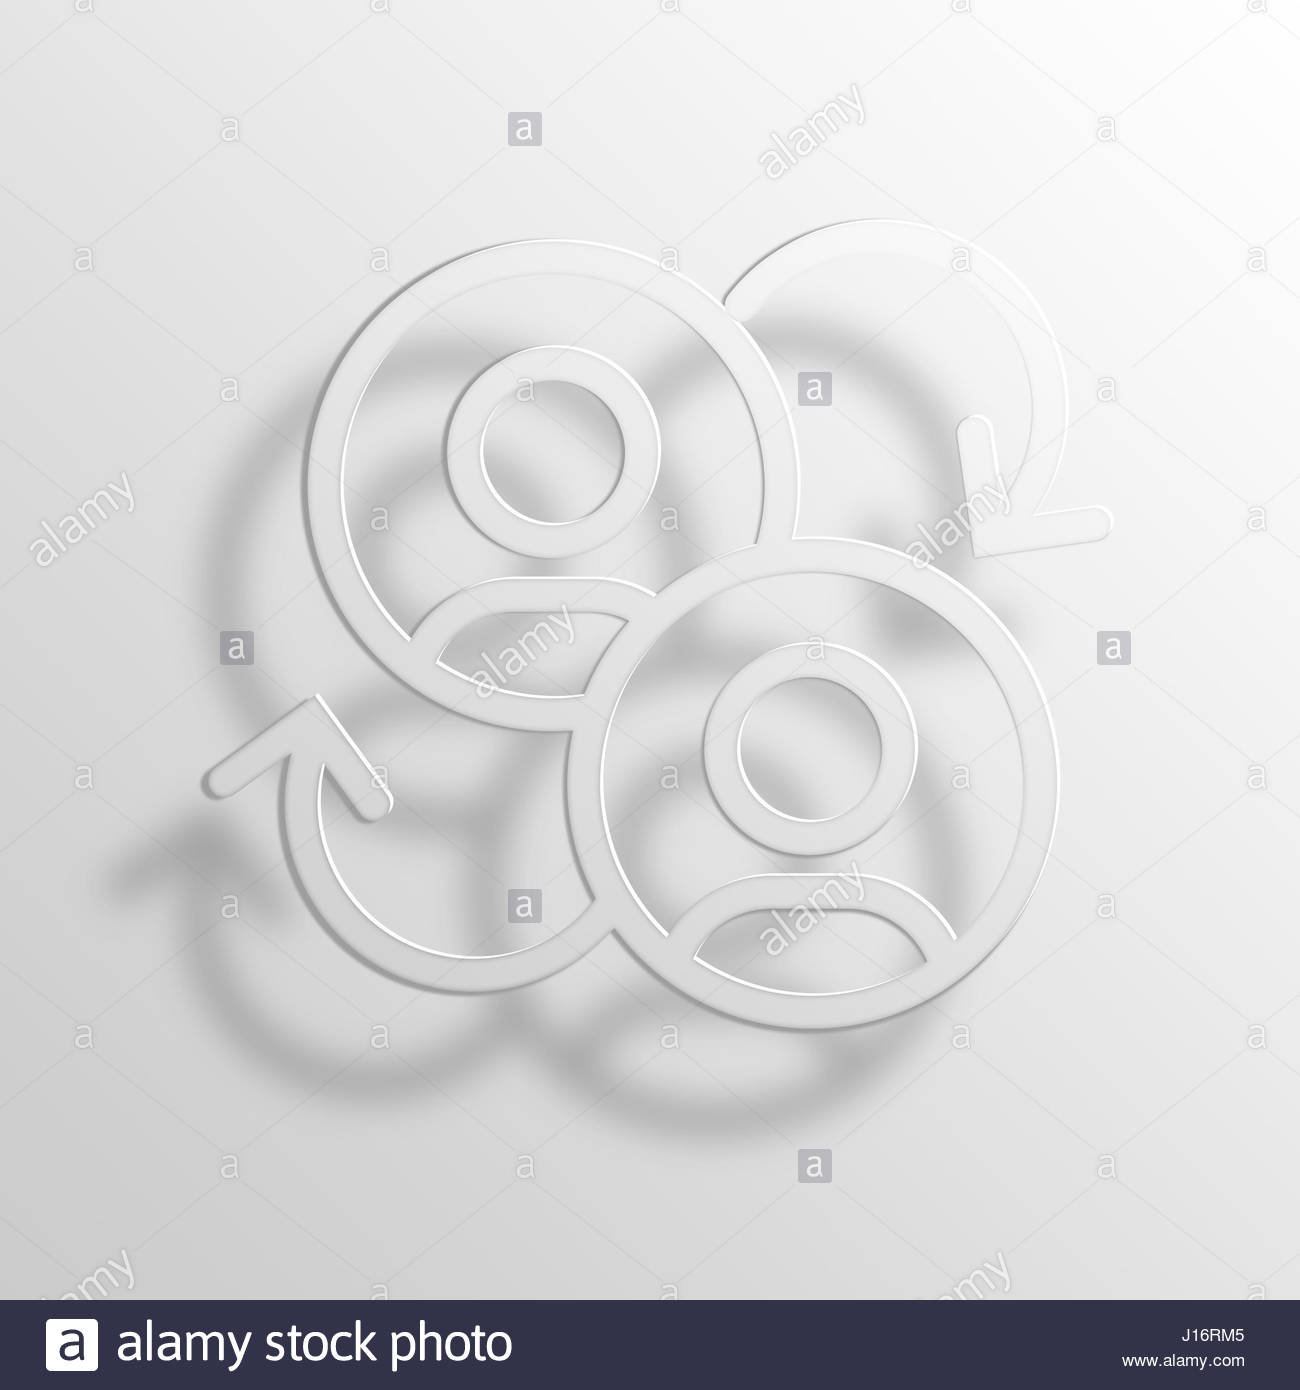 switch 3D Paper Icon Symbol Business Concept No.7041 Stock Photo ...